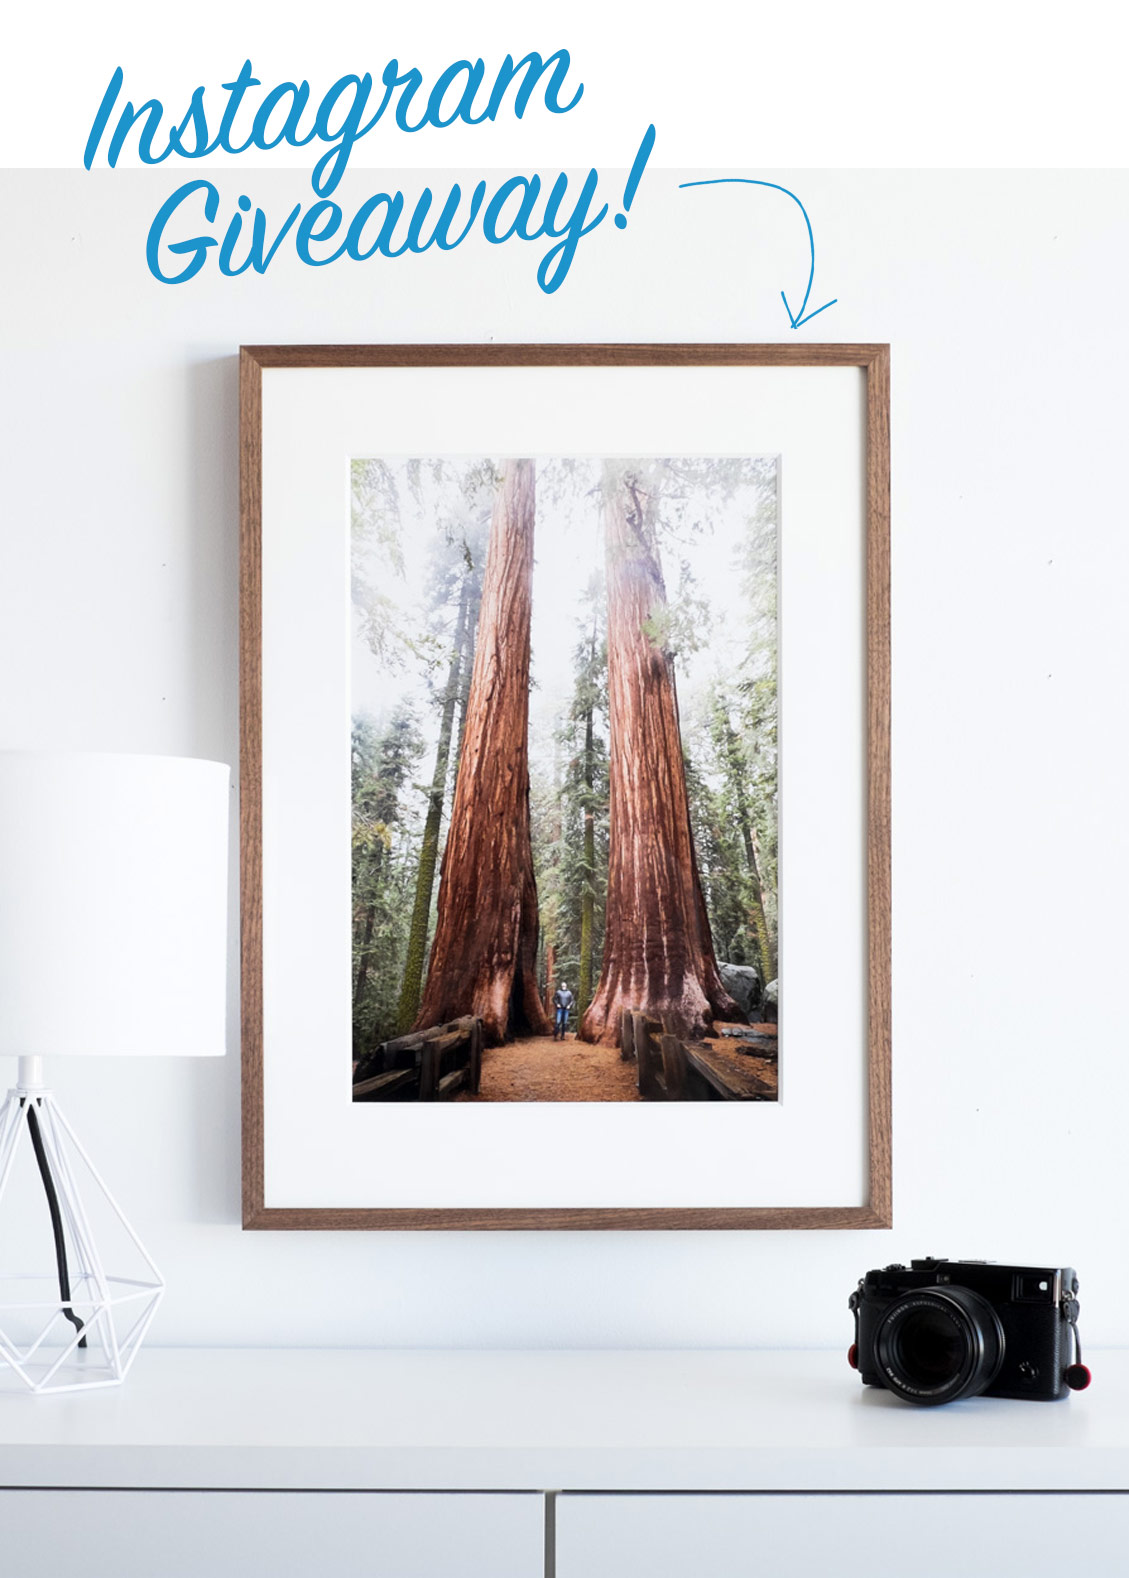 Giant sequoia framed photograph